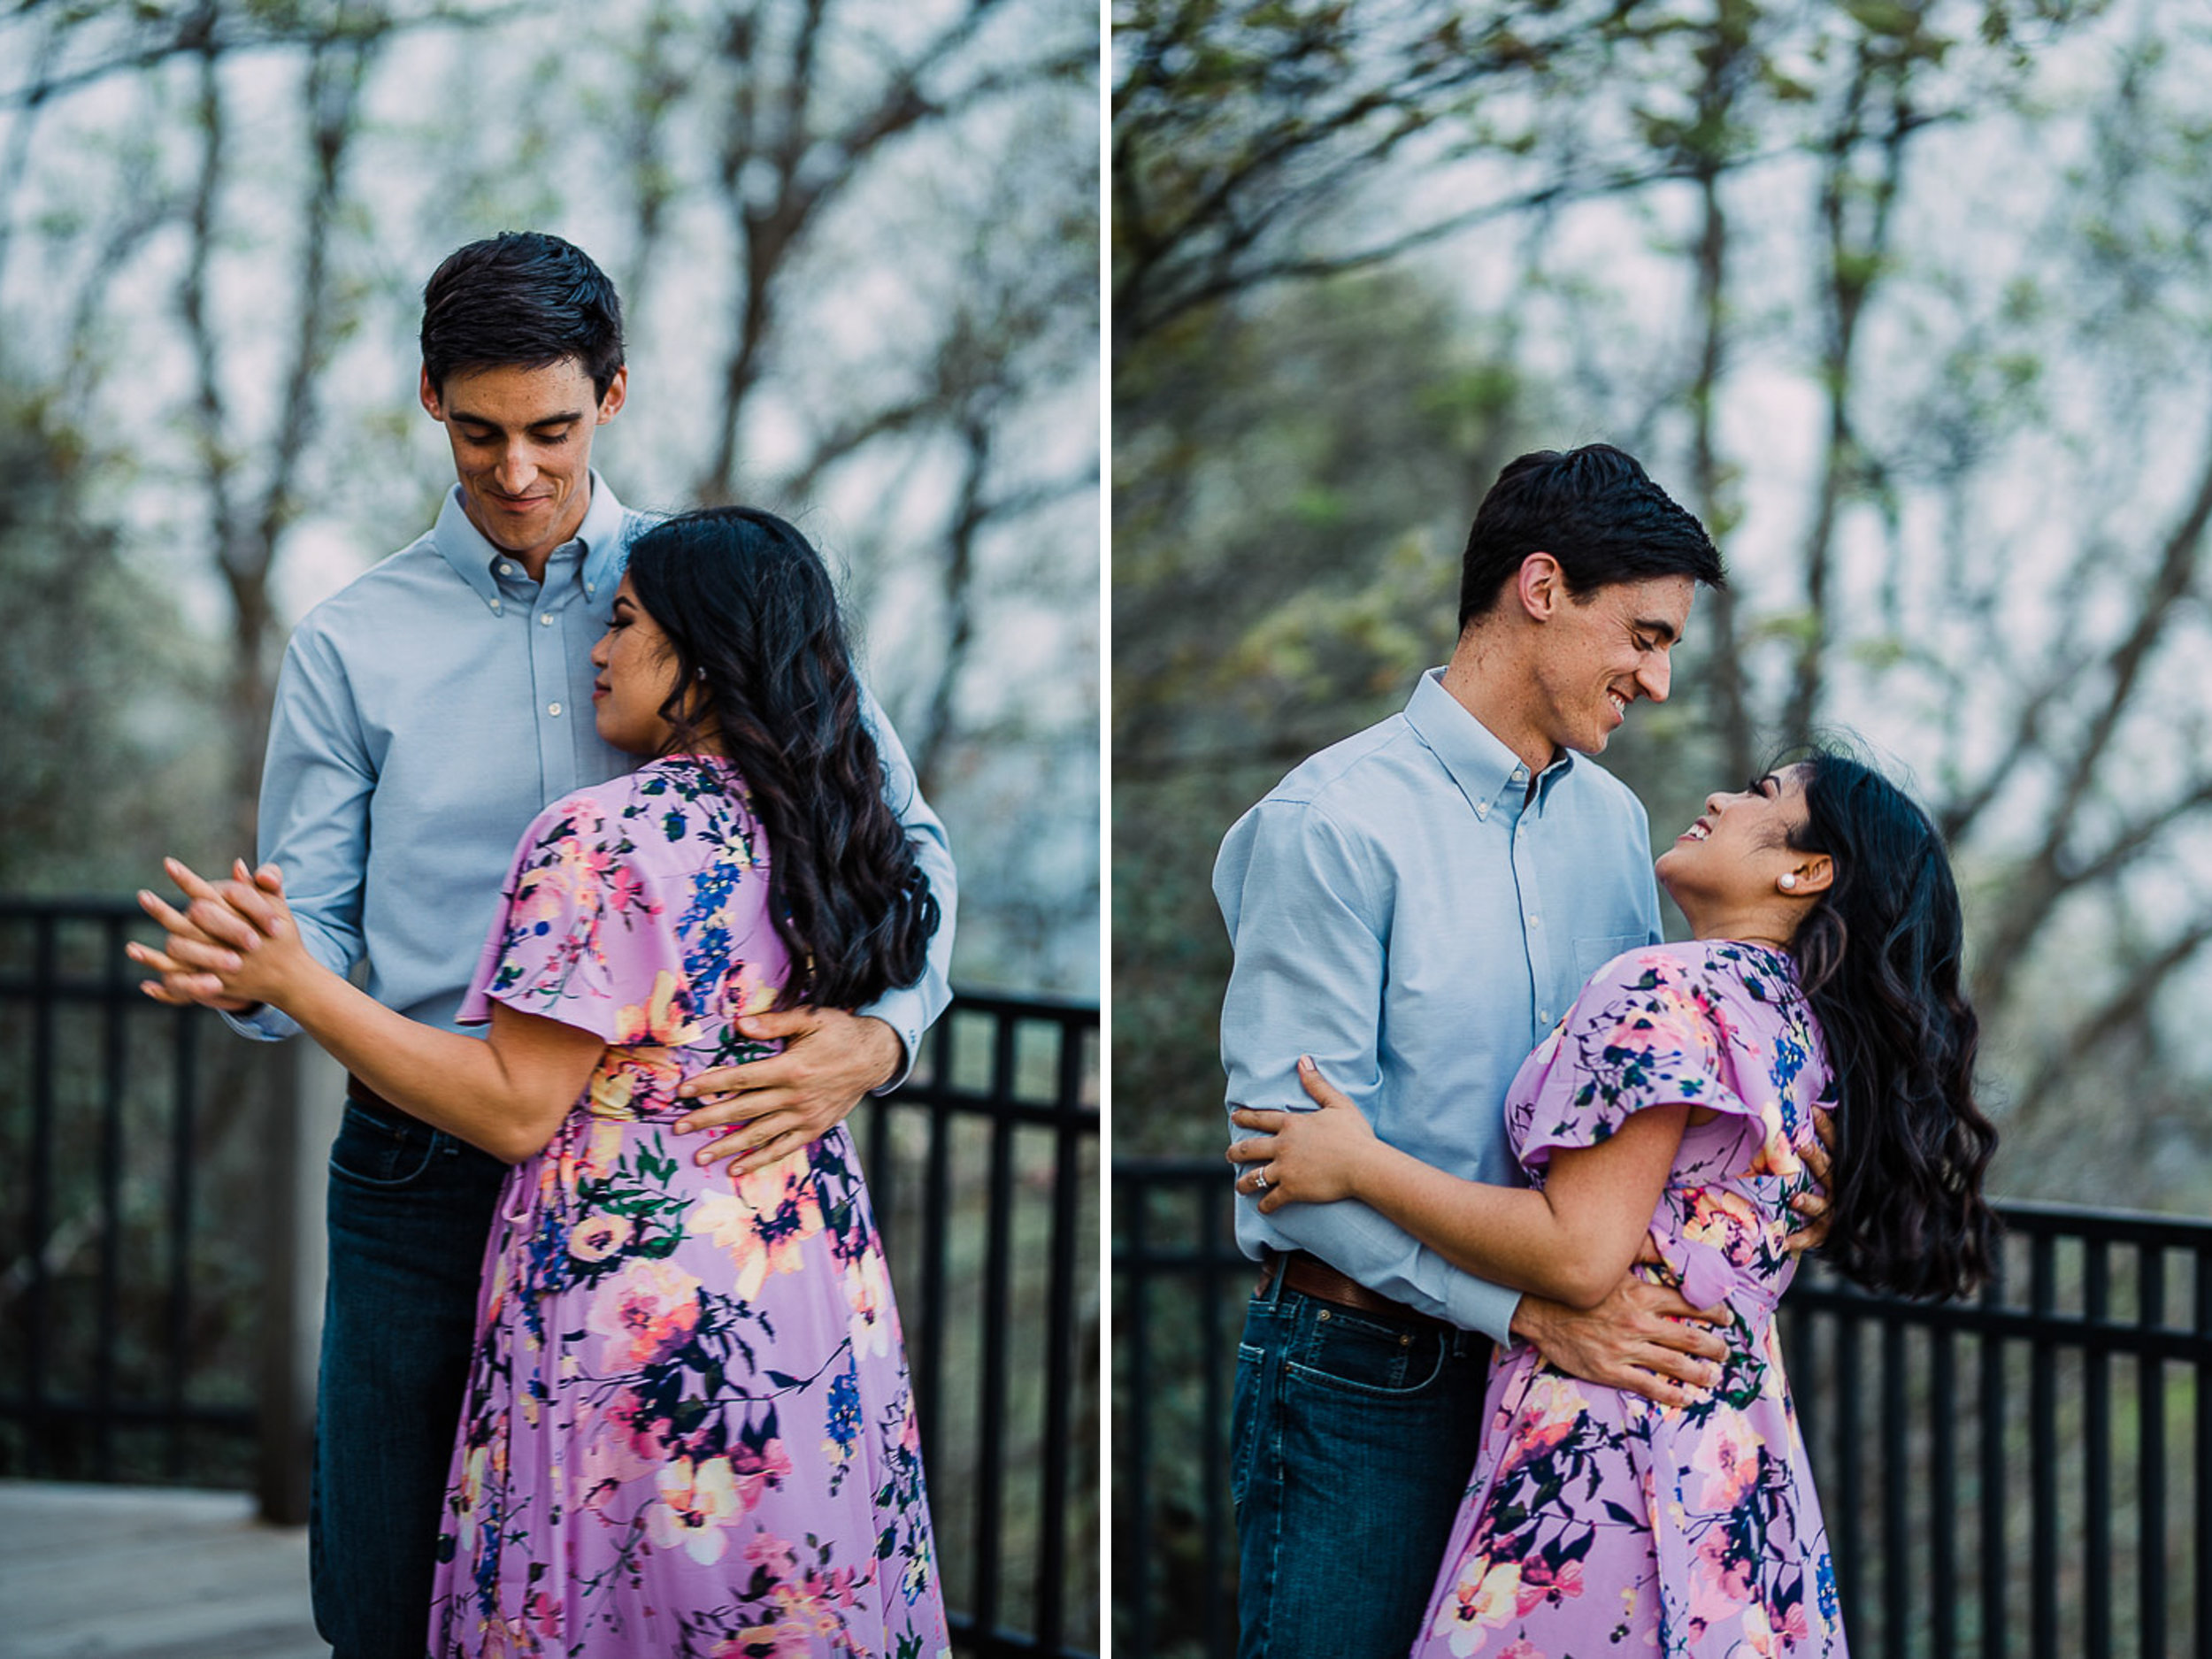 River Engagement Portraits, Engaged, Mountain Engagement, 19.jpg